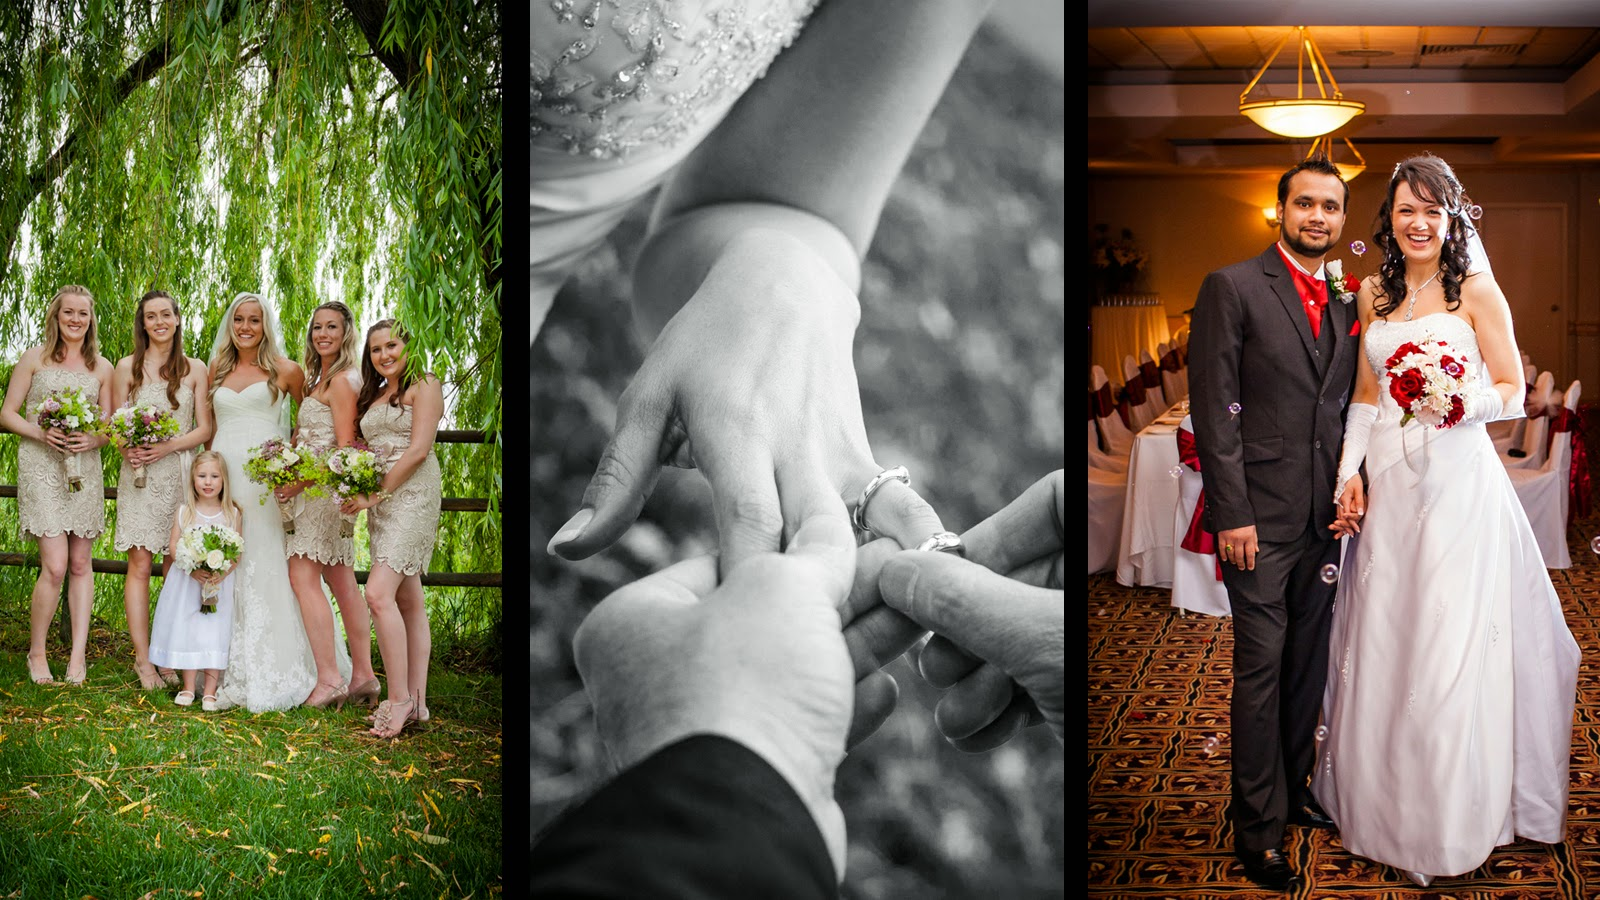 Chris Gardiner professional wedding photography in the Okanagan and Greater Toronto Area, traveling the rest of Canada